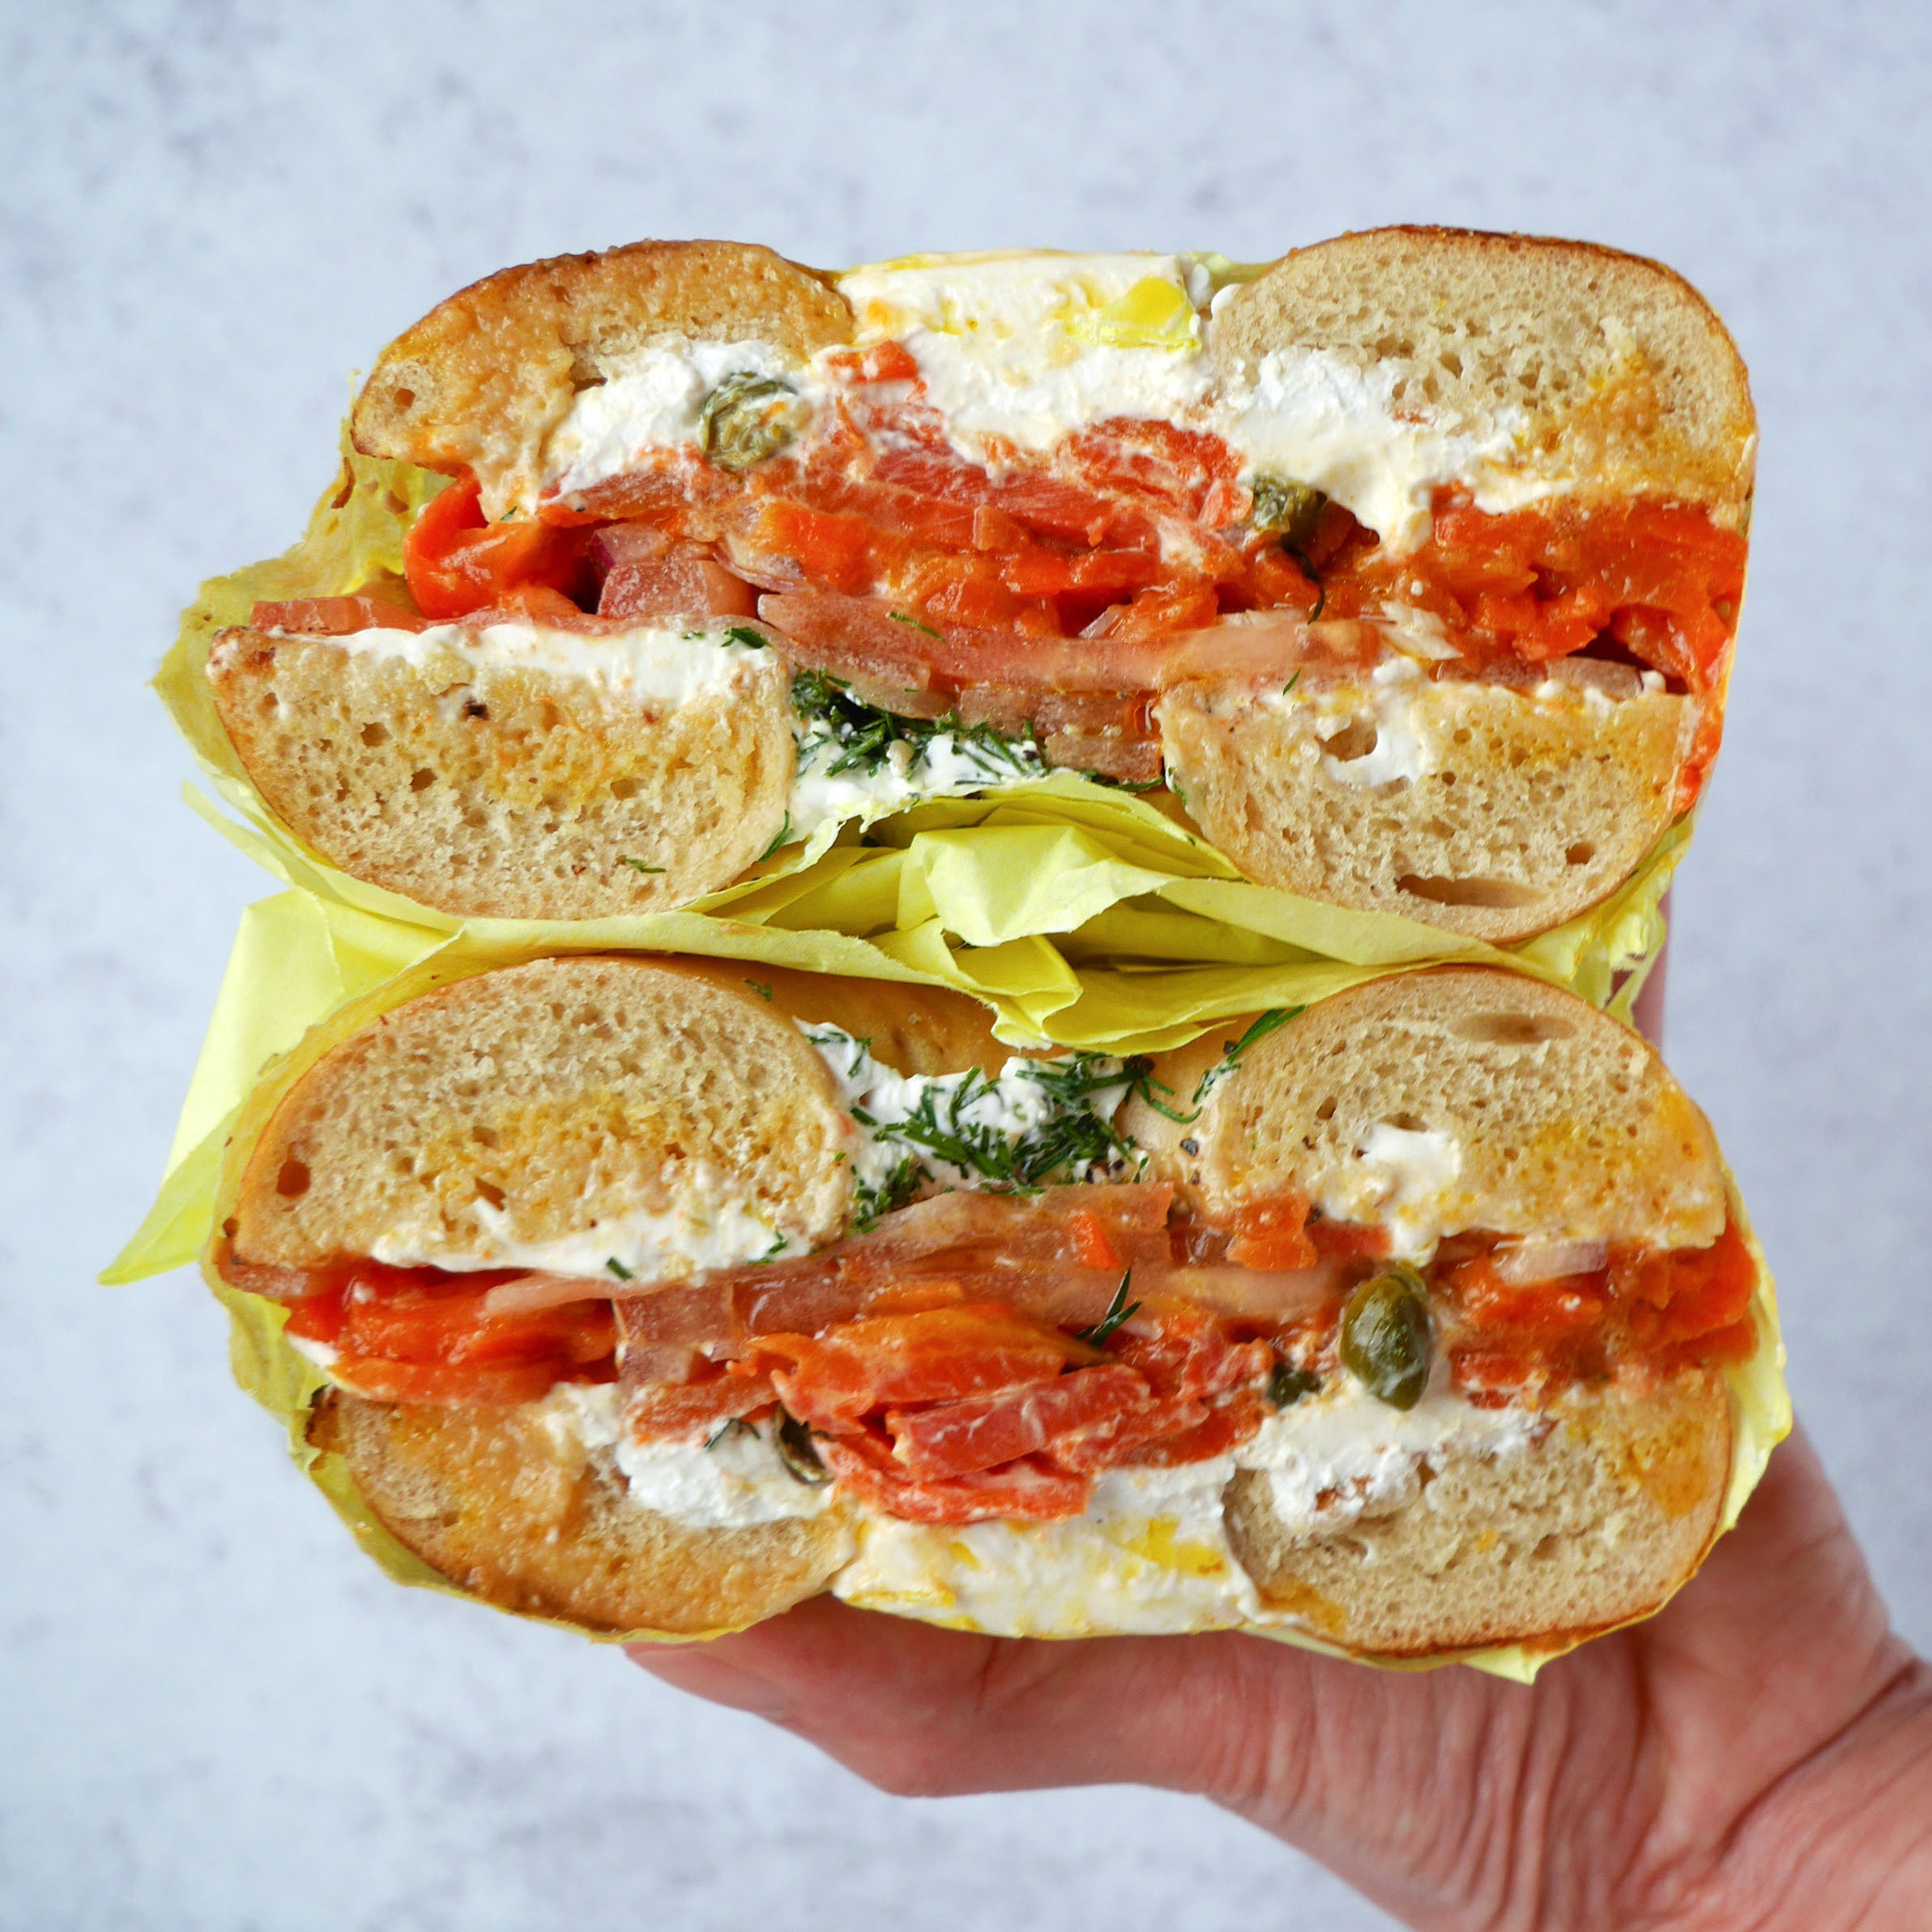 A hand holds a bagel filled with slices of orange carrot, with schmear and herbs on either side. This bagel was sold at the original Ben & Esther's location in Portland, Oregon